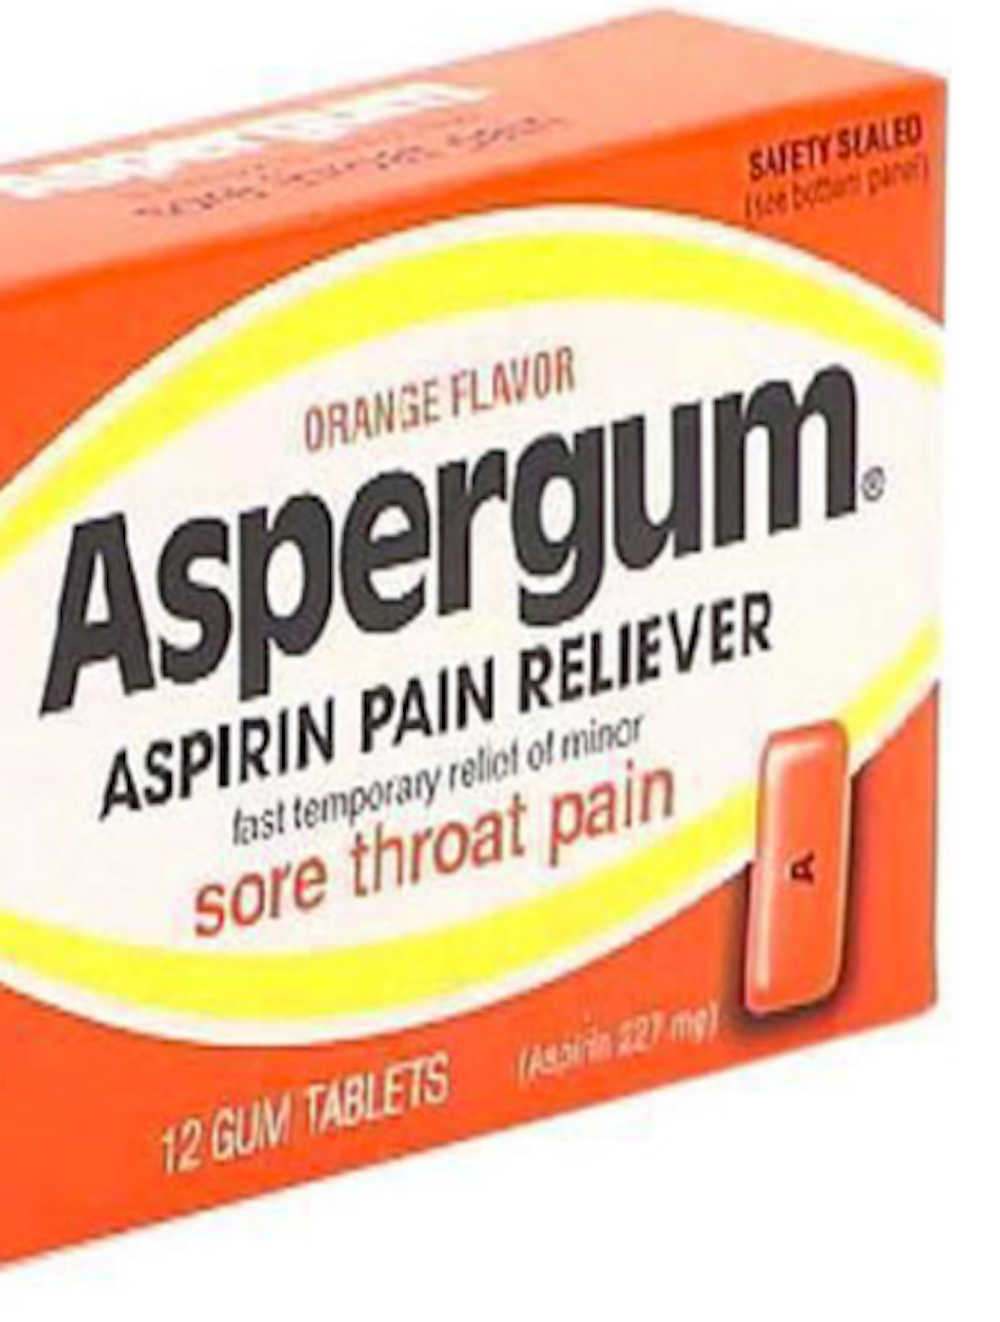 Craven Noted Patients Who Chewed Aspergum Experienced Severe Bleeding News Screenshot